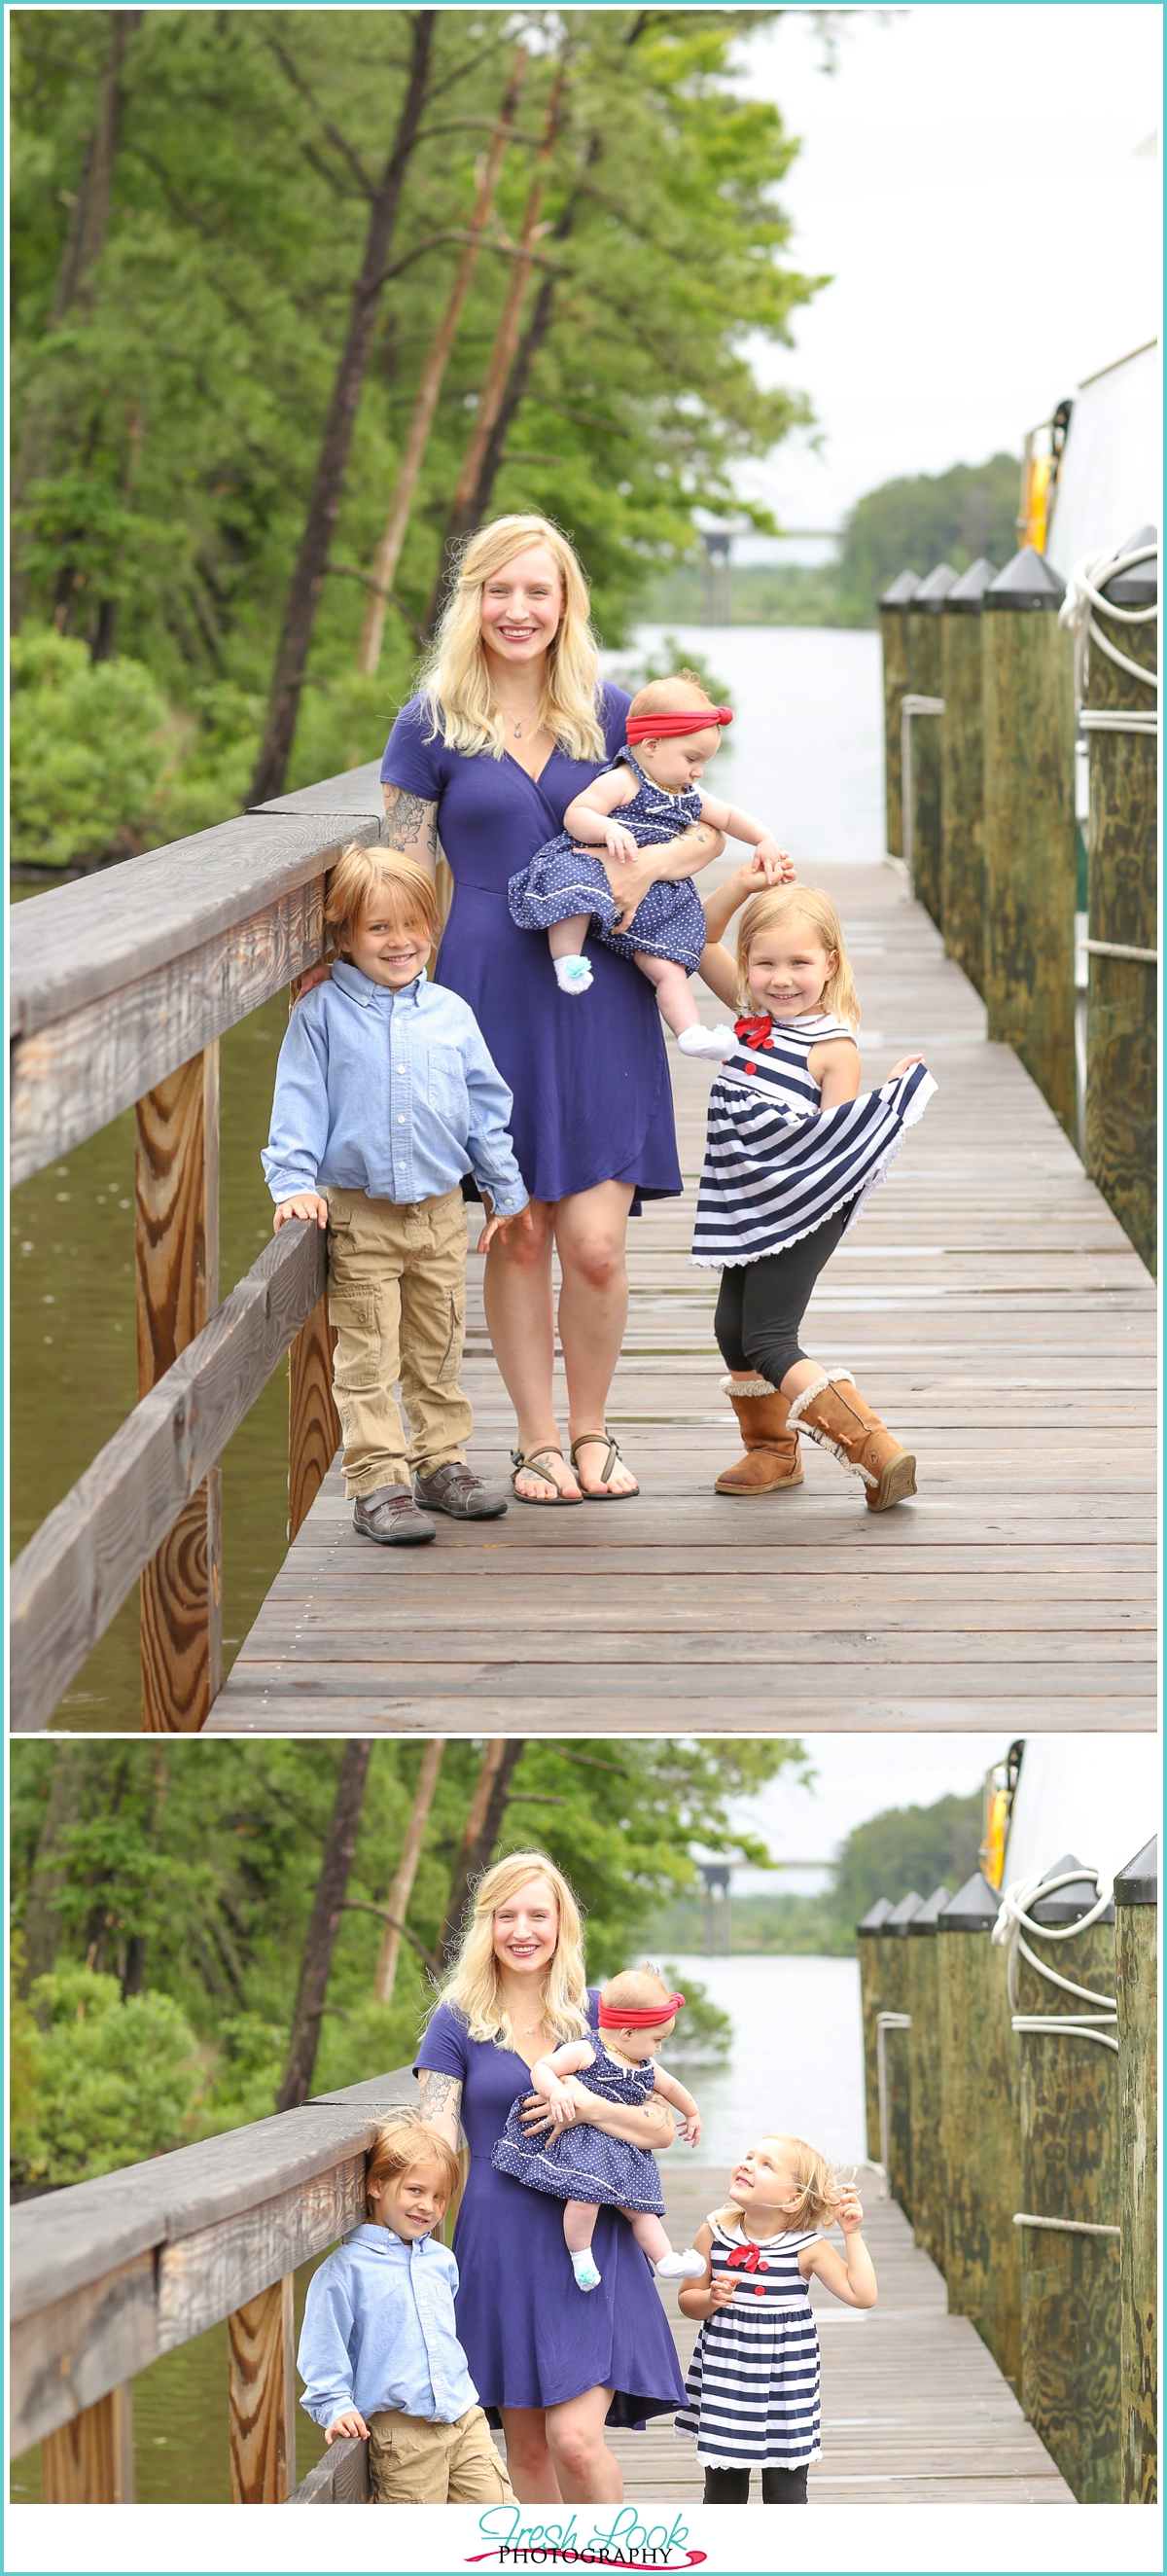 Great Bridge family photo shoot